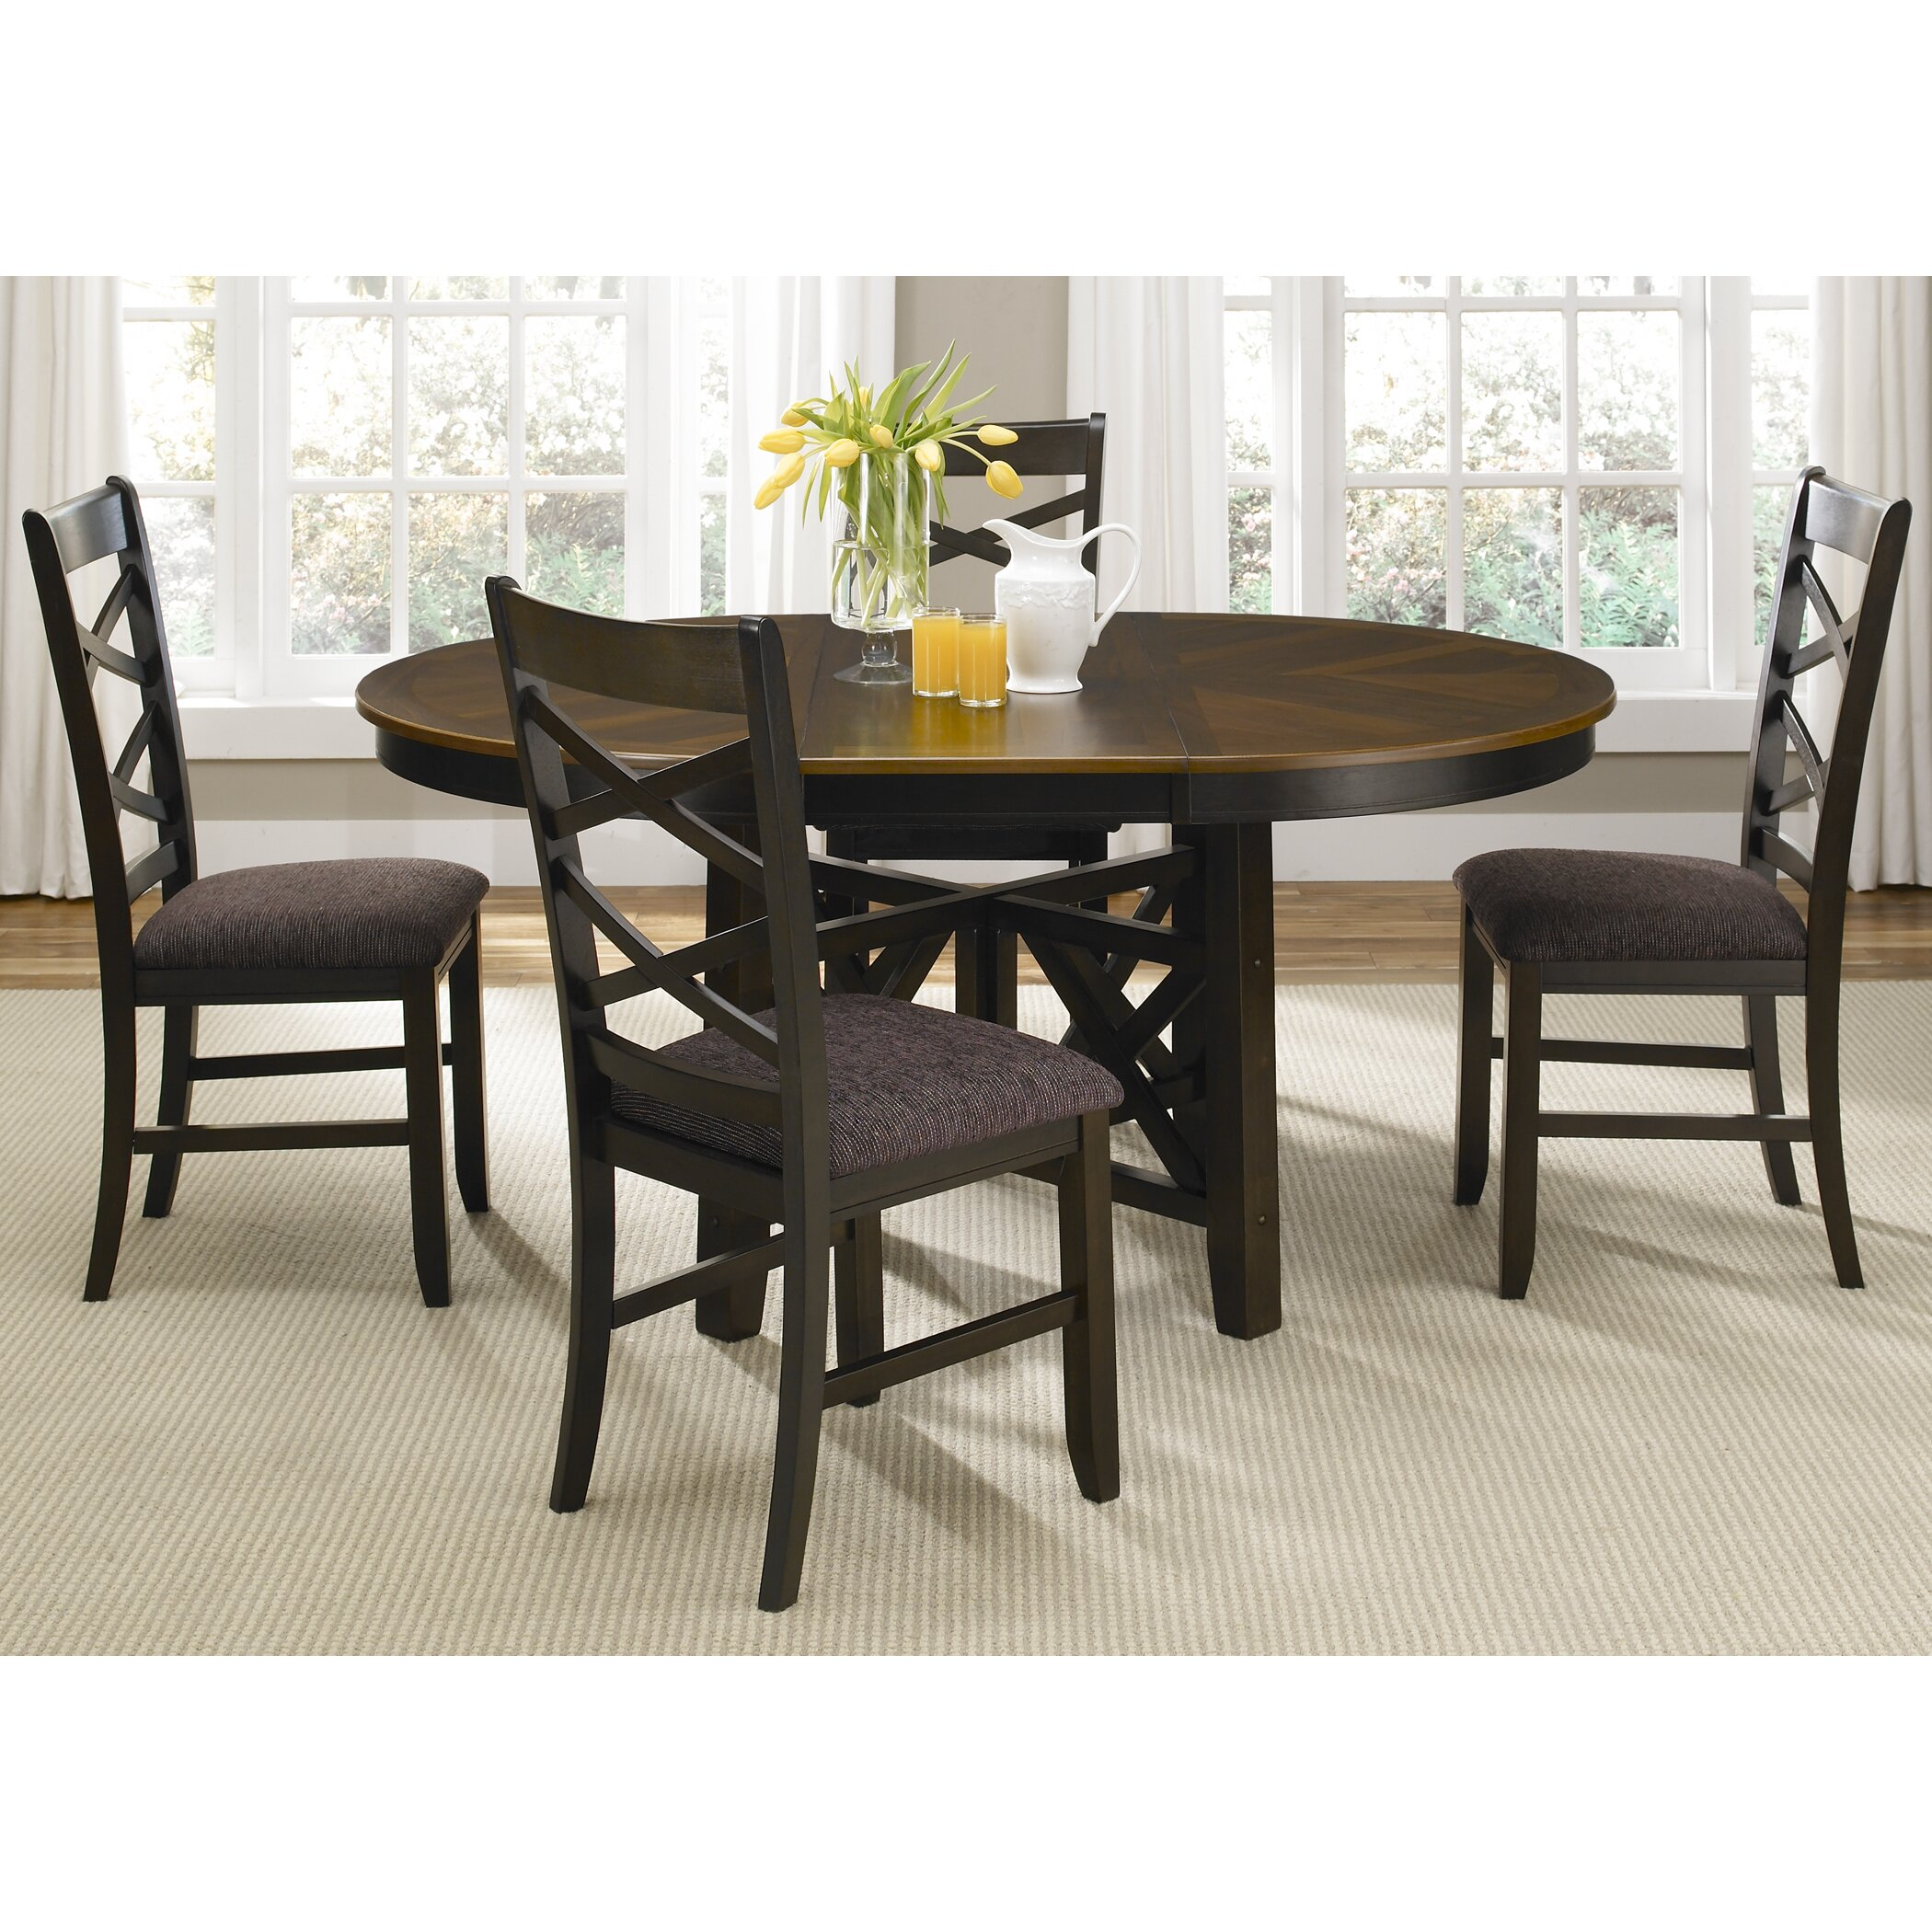 Liberty furniture bistro ii 5 piece dining set reviews for 5 piece dining set